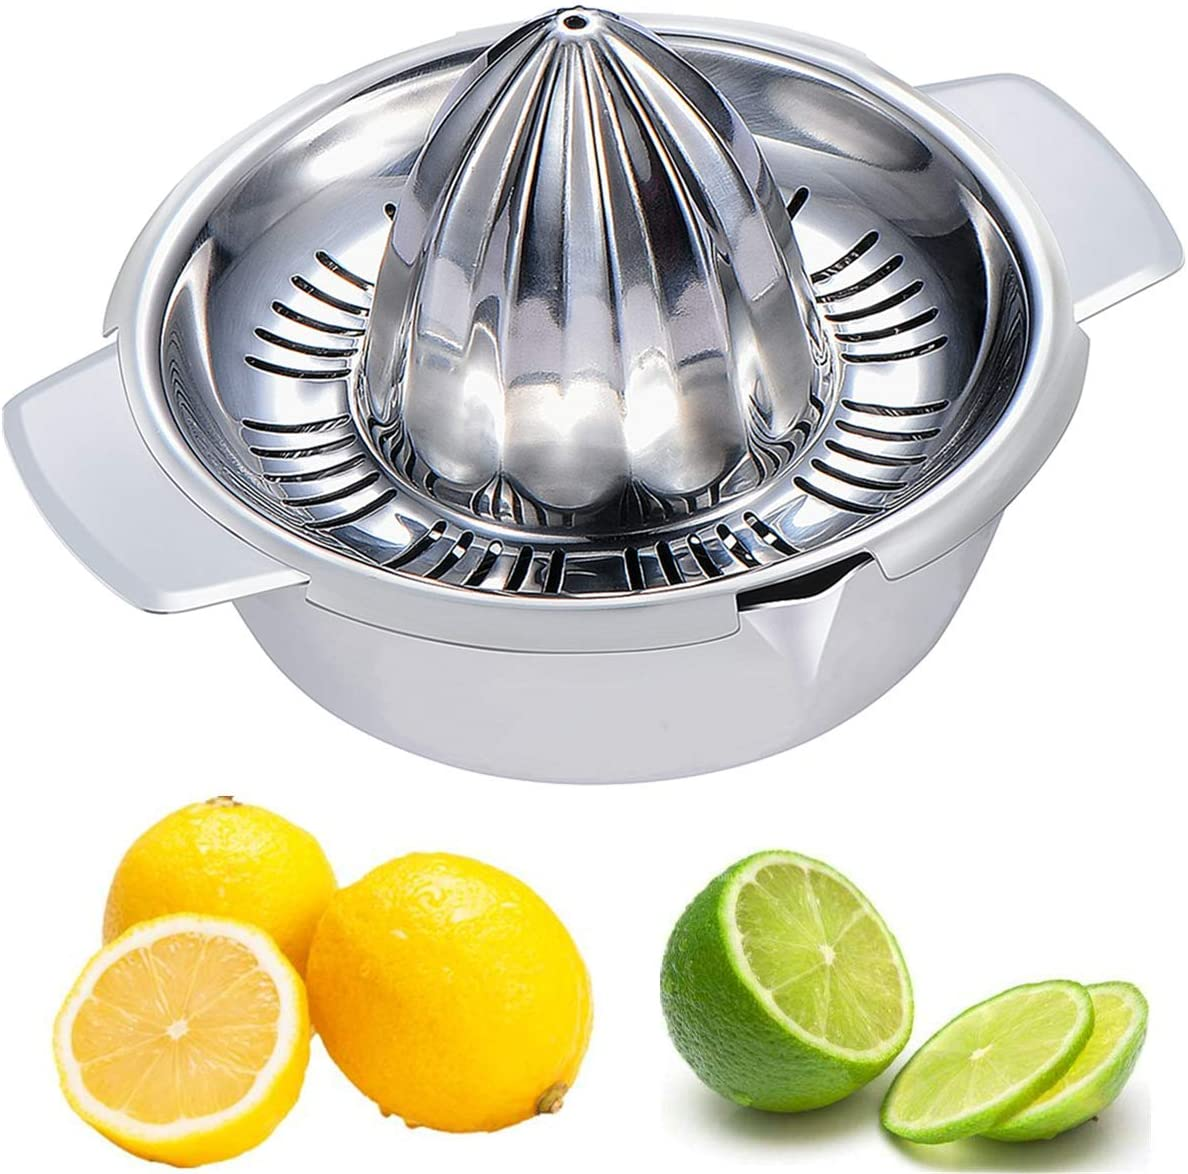 Citrus Lemon Orange Grapefruit Juicer Manual Stainless Steel 304 Anti-Rust Metal Hand Press Fruit Squeezer with Juice Strainer and 12 OZ Bowl with 2 Spouts, Dishwasher Safe, Easy to Clean, Heavy Duty